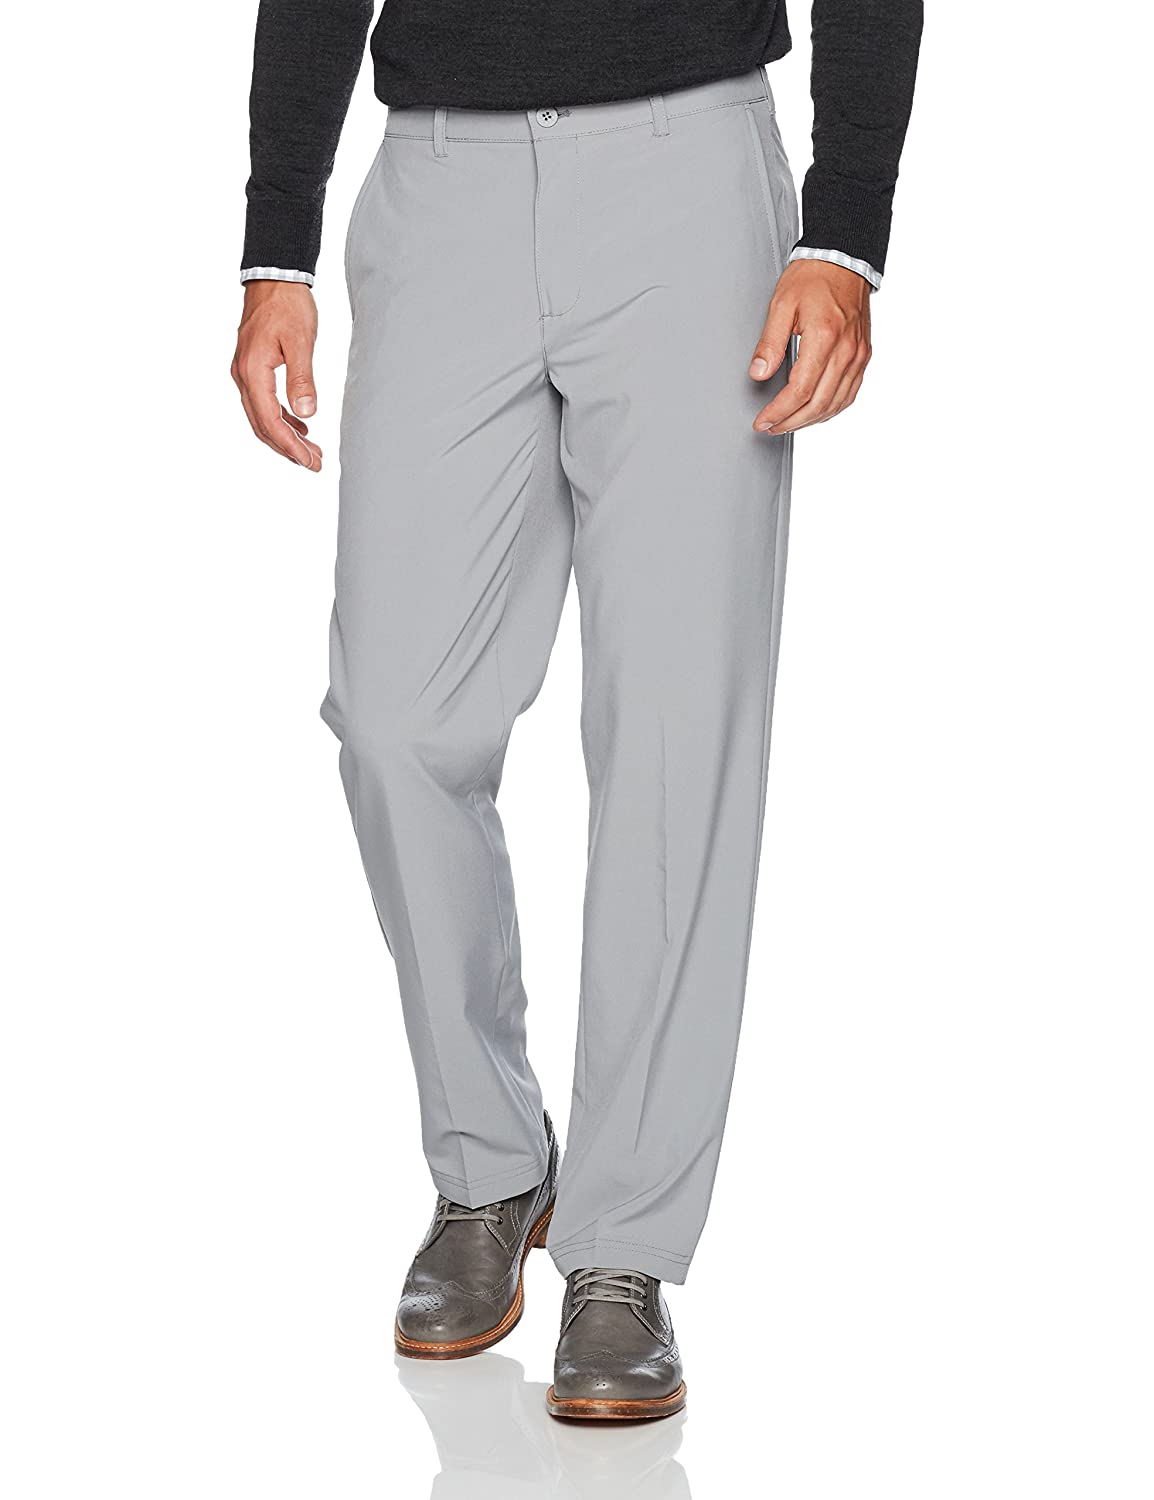 Izod Mens Swing Flex Pant IZOD Men' s Sportswear 45FF291